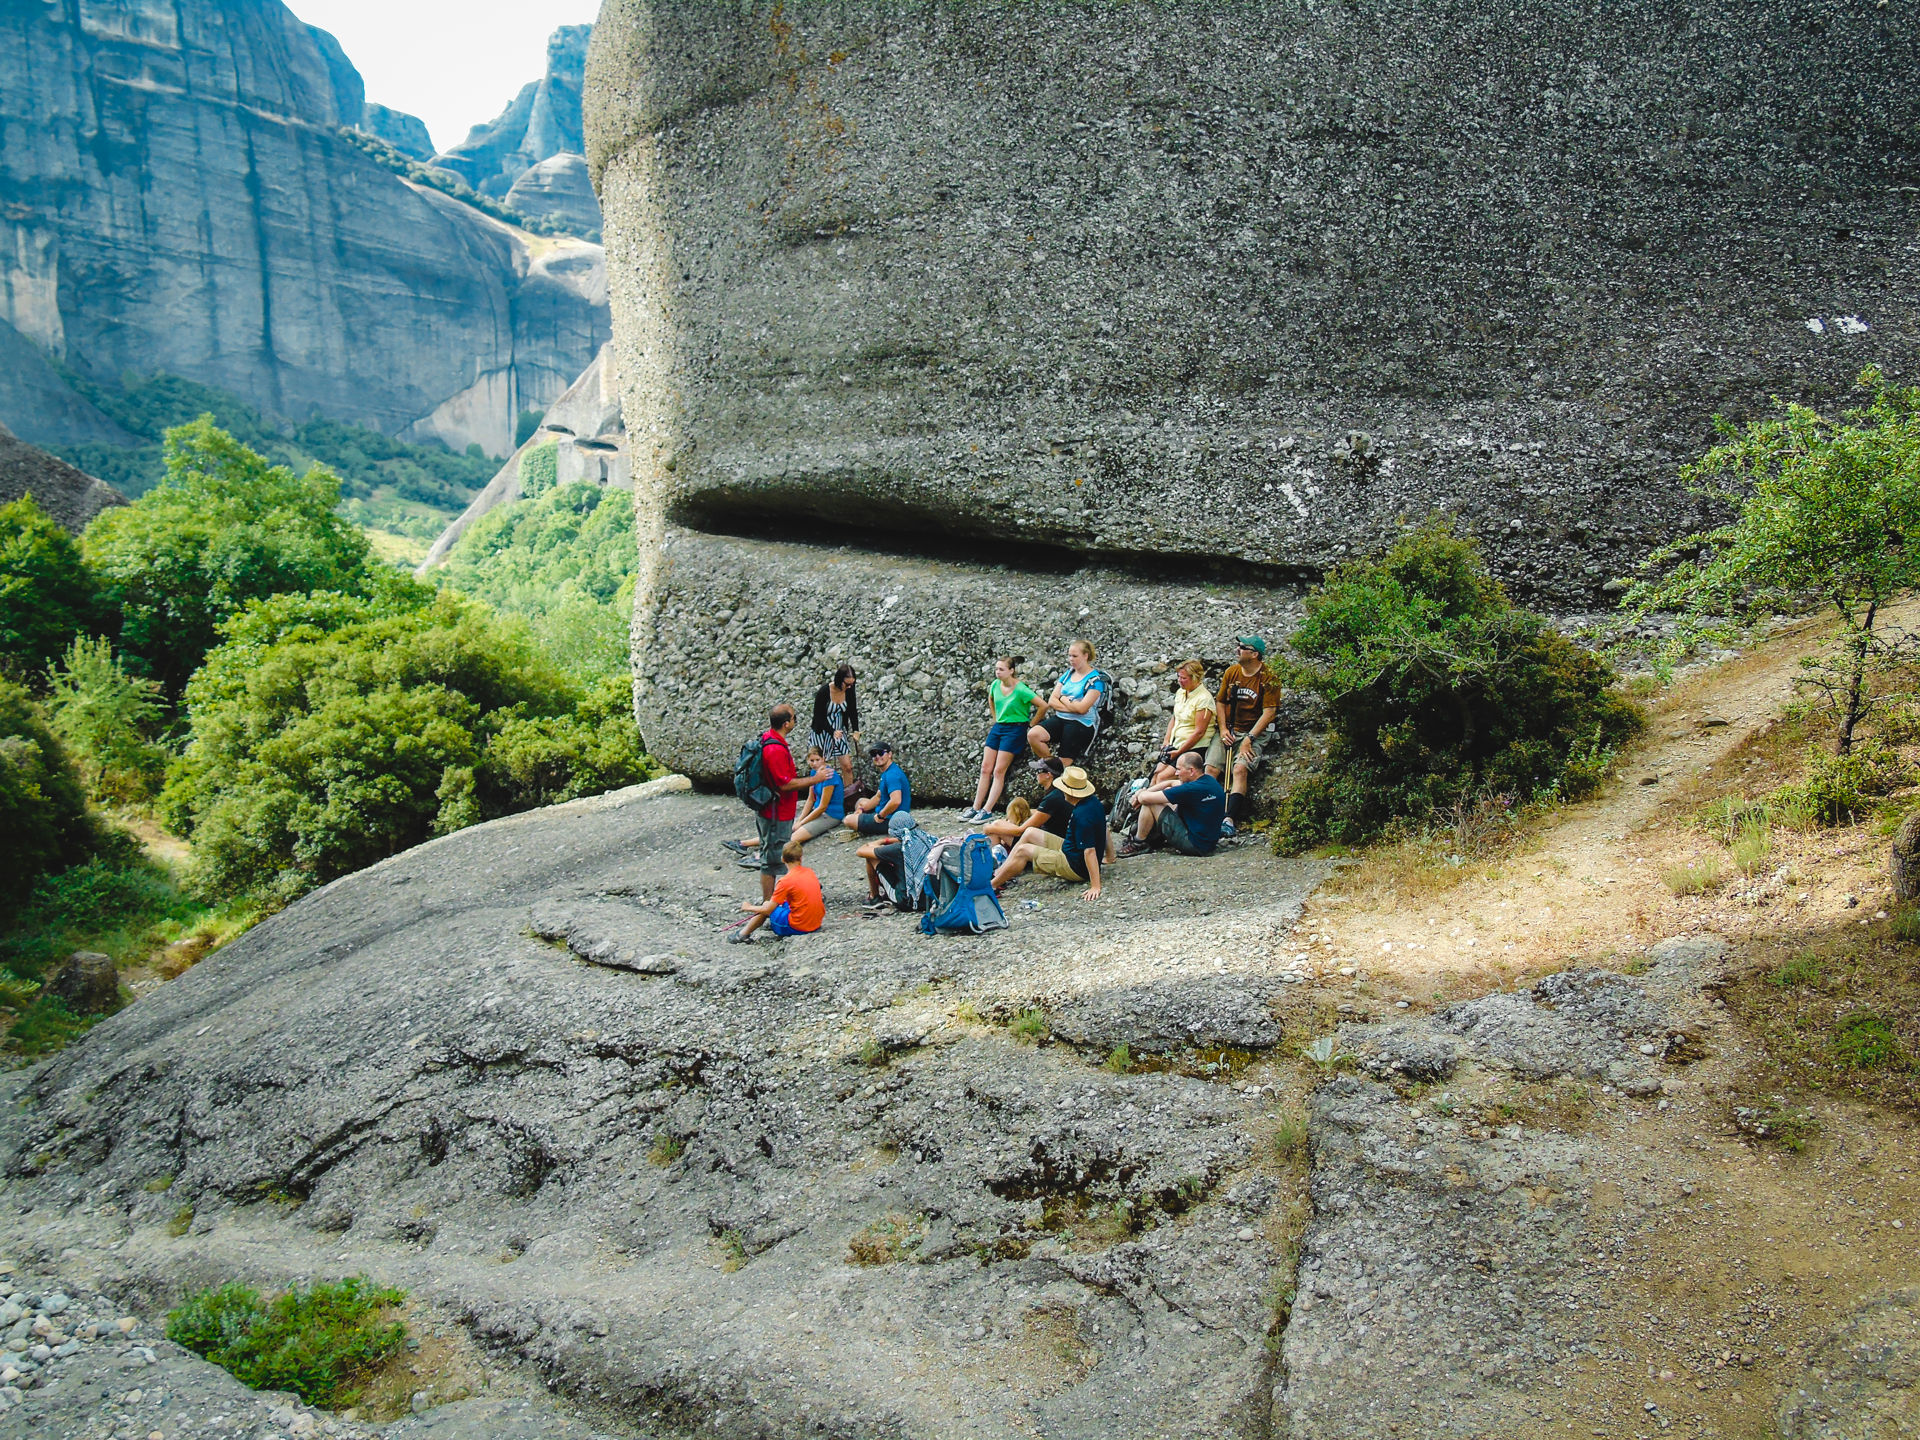 Walk among the gigantic rock pillars of Meteora